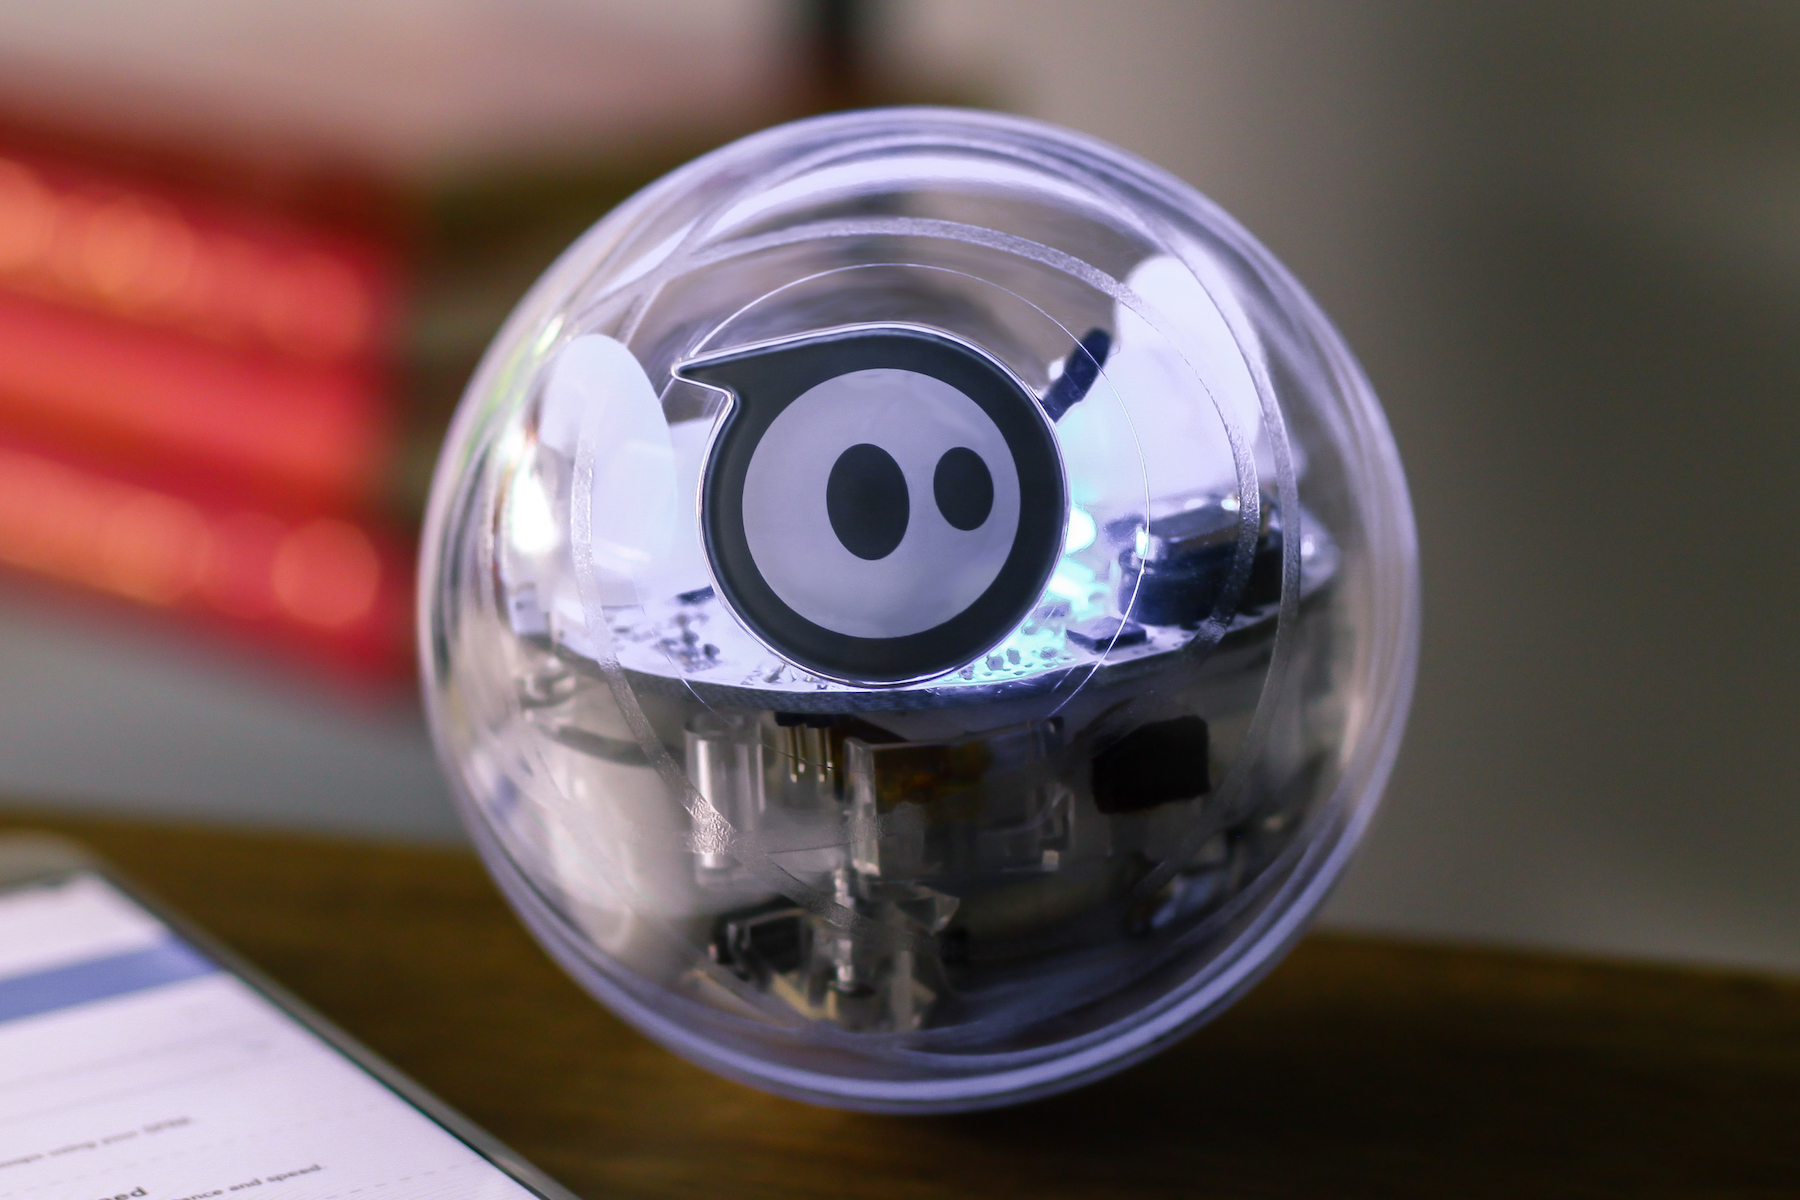 sphero sprk edition 9.jpg